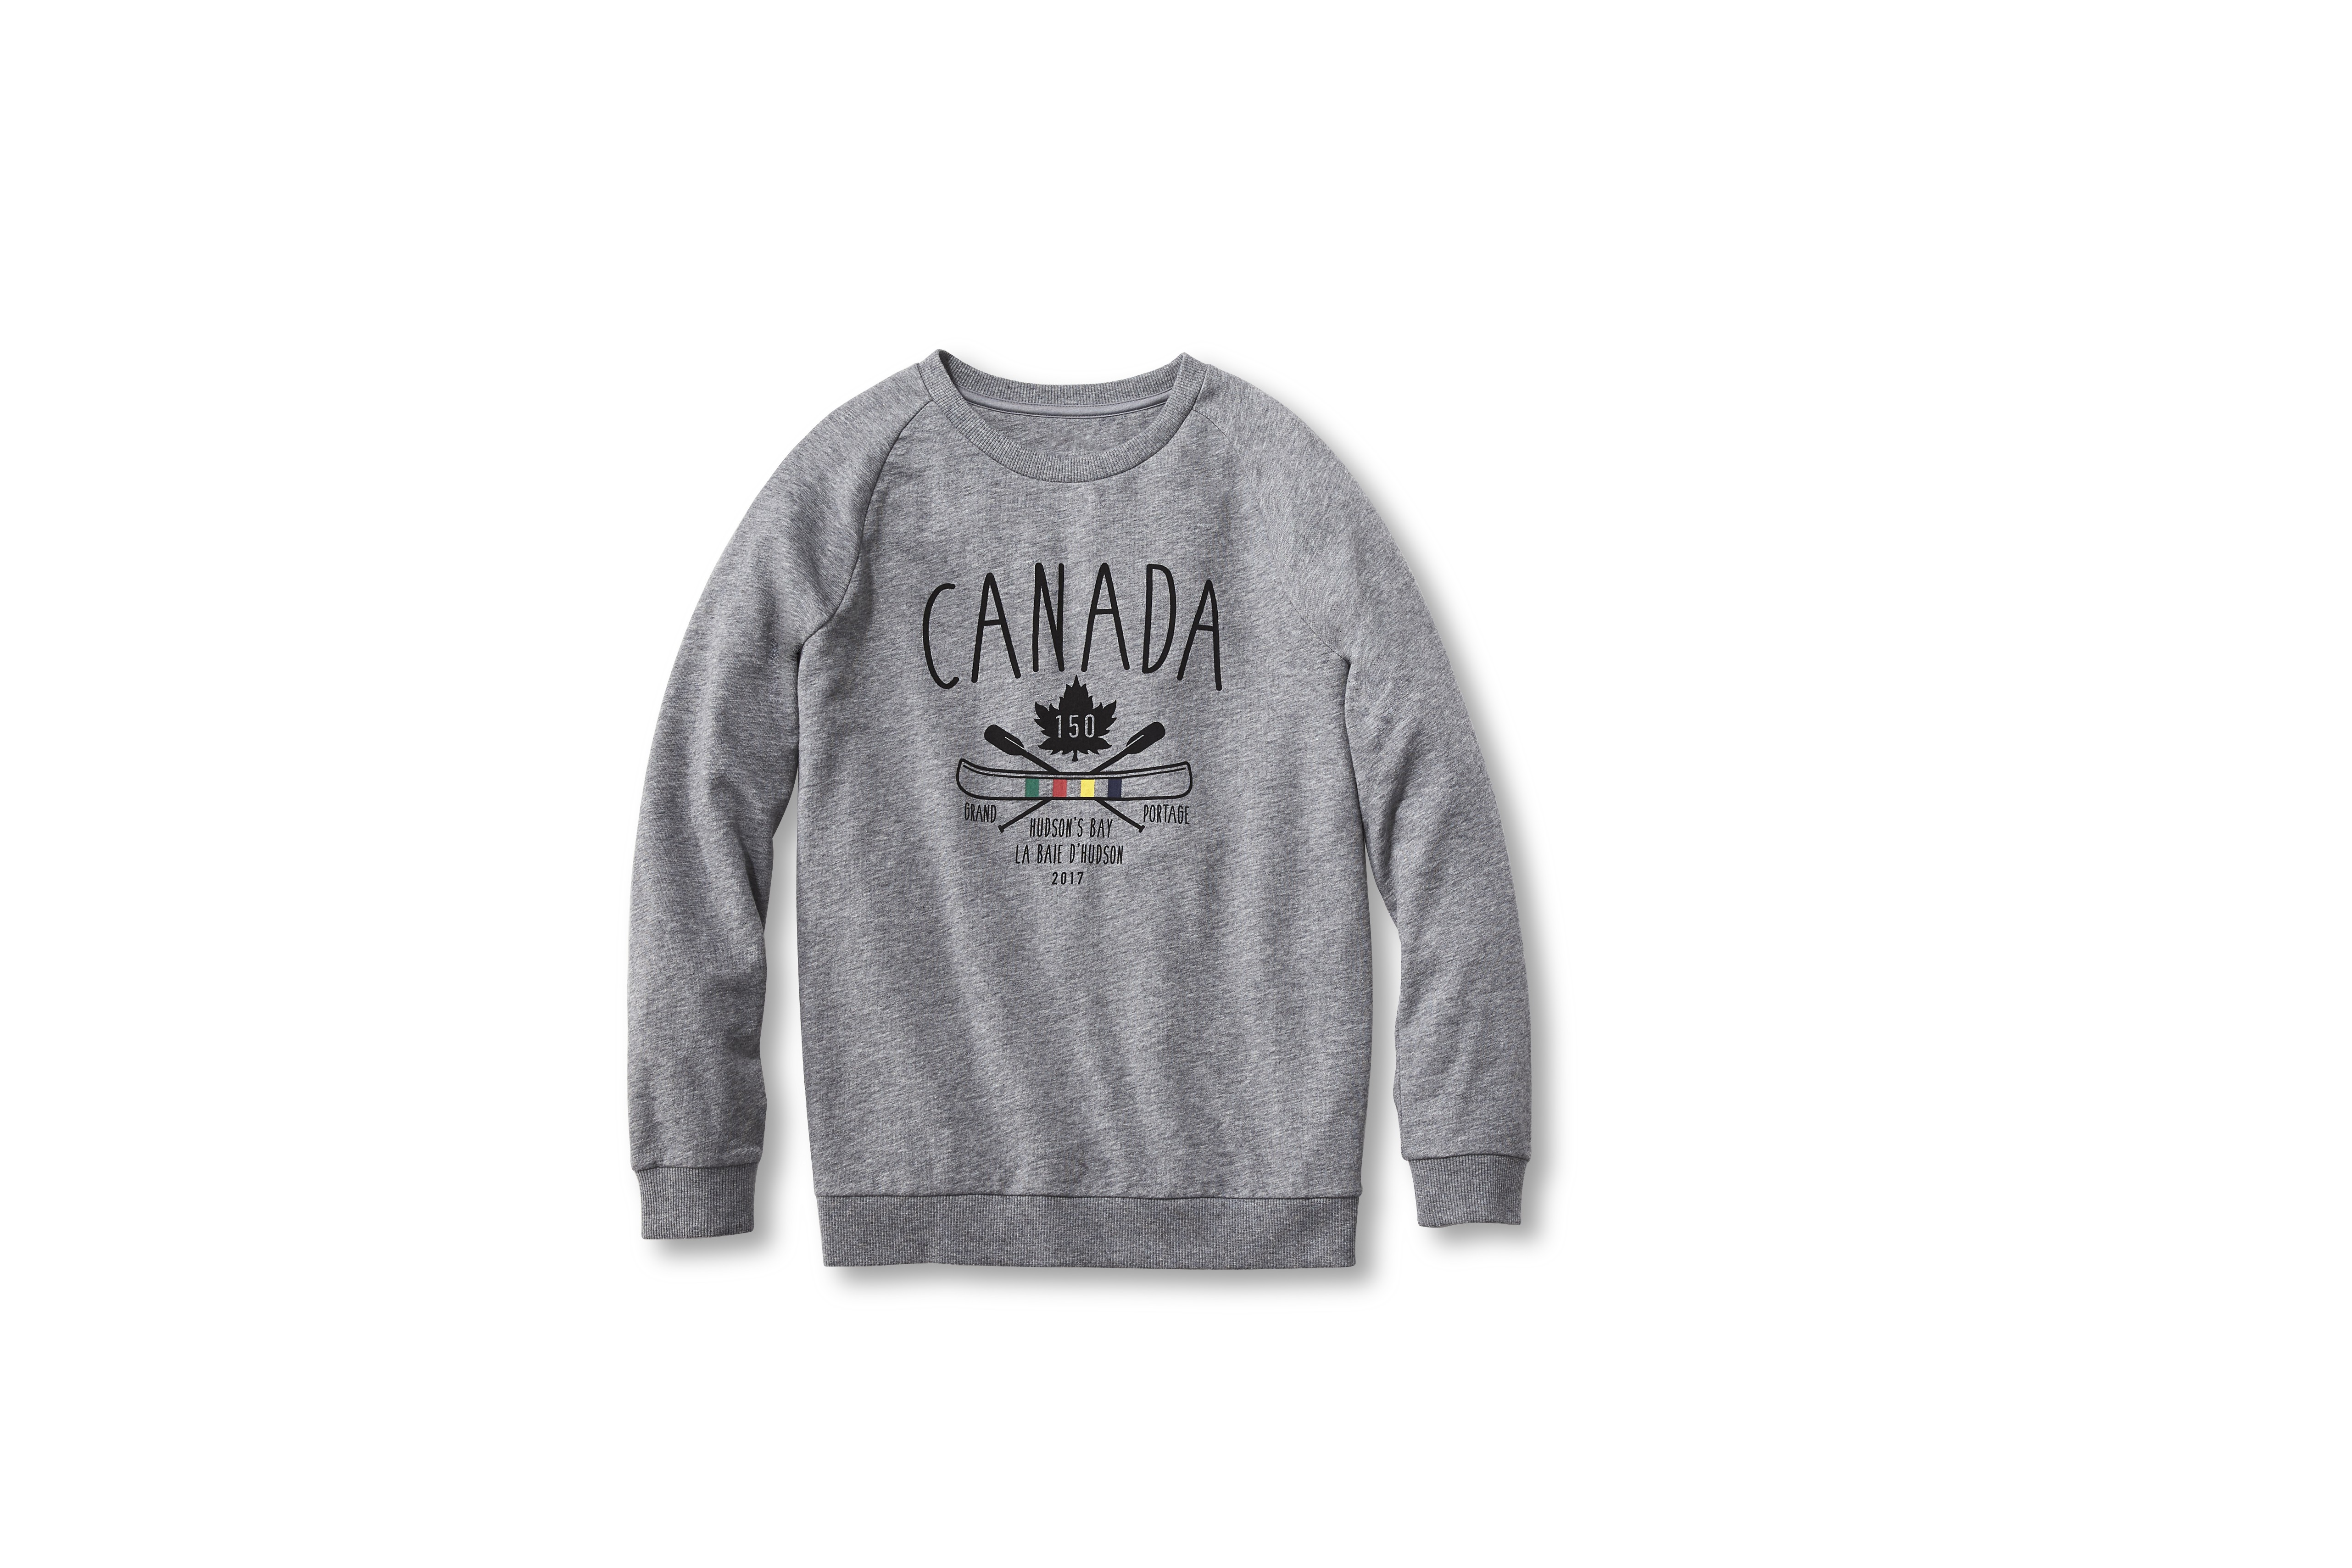 A Portage women's sweatshirt, part of Hudson's Bay's program to mark Canada's 150th birthday